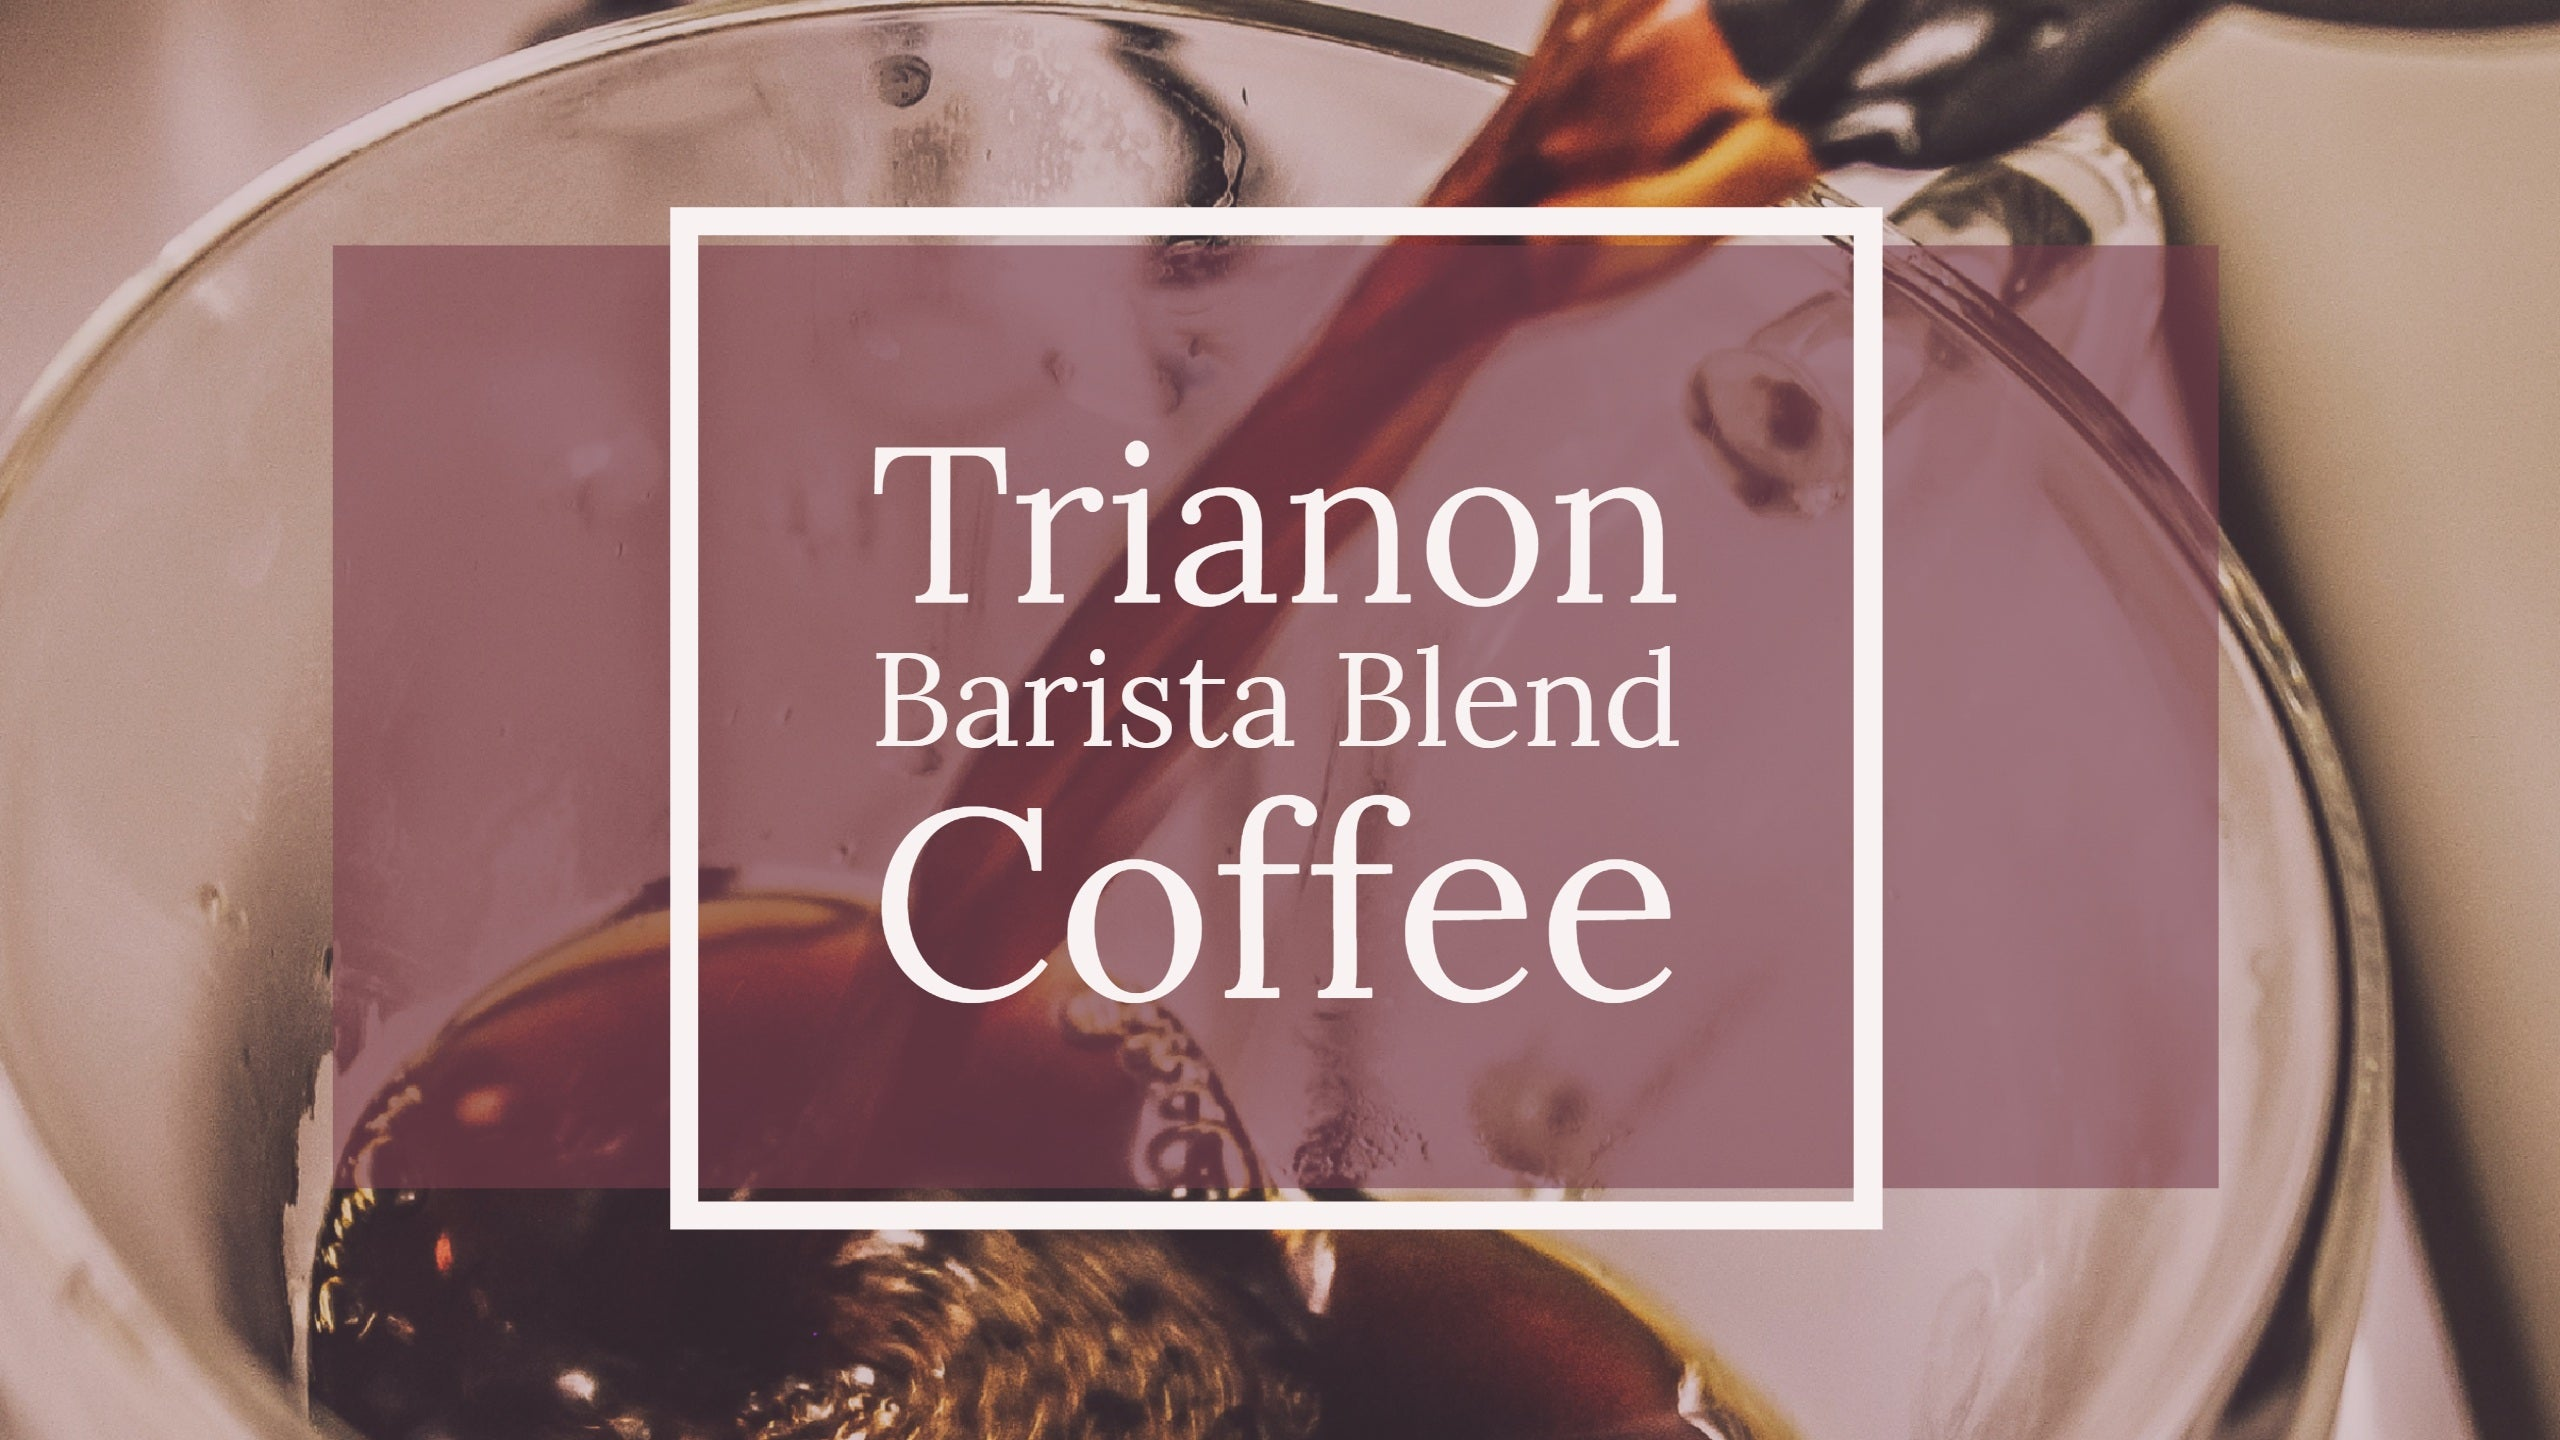 Trianon Barista Blend Coffee